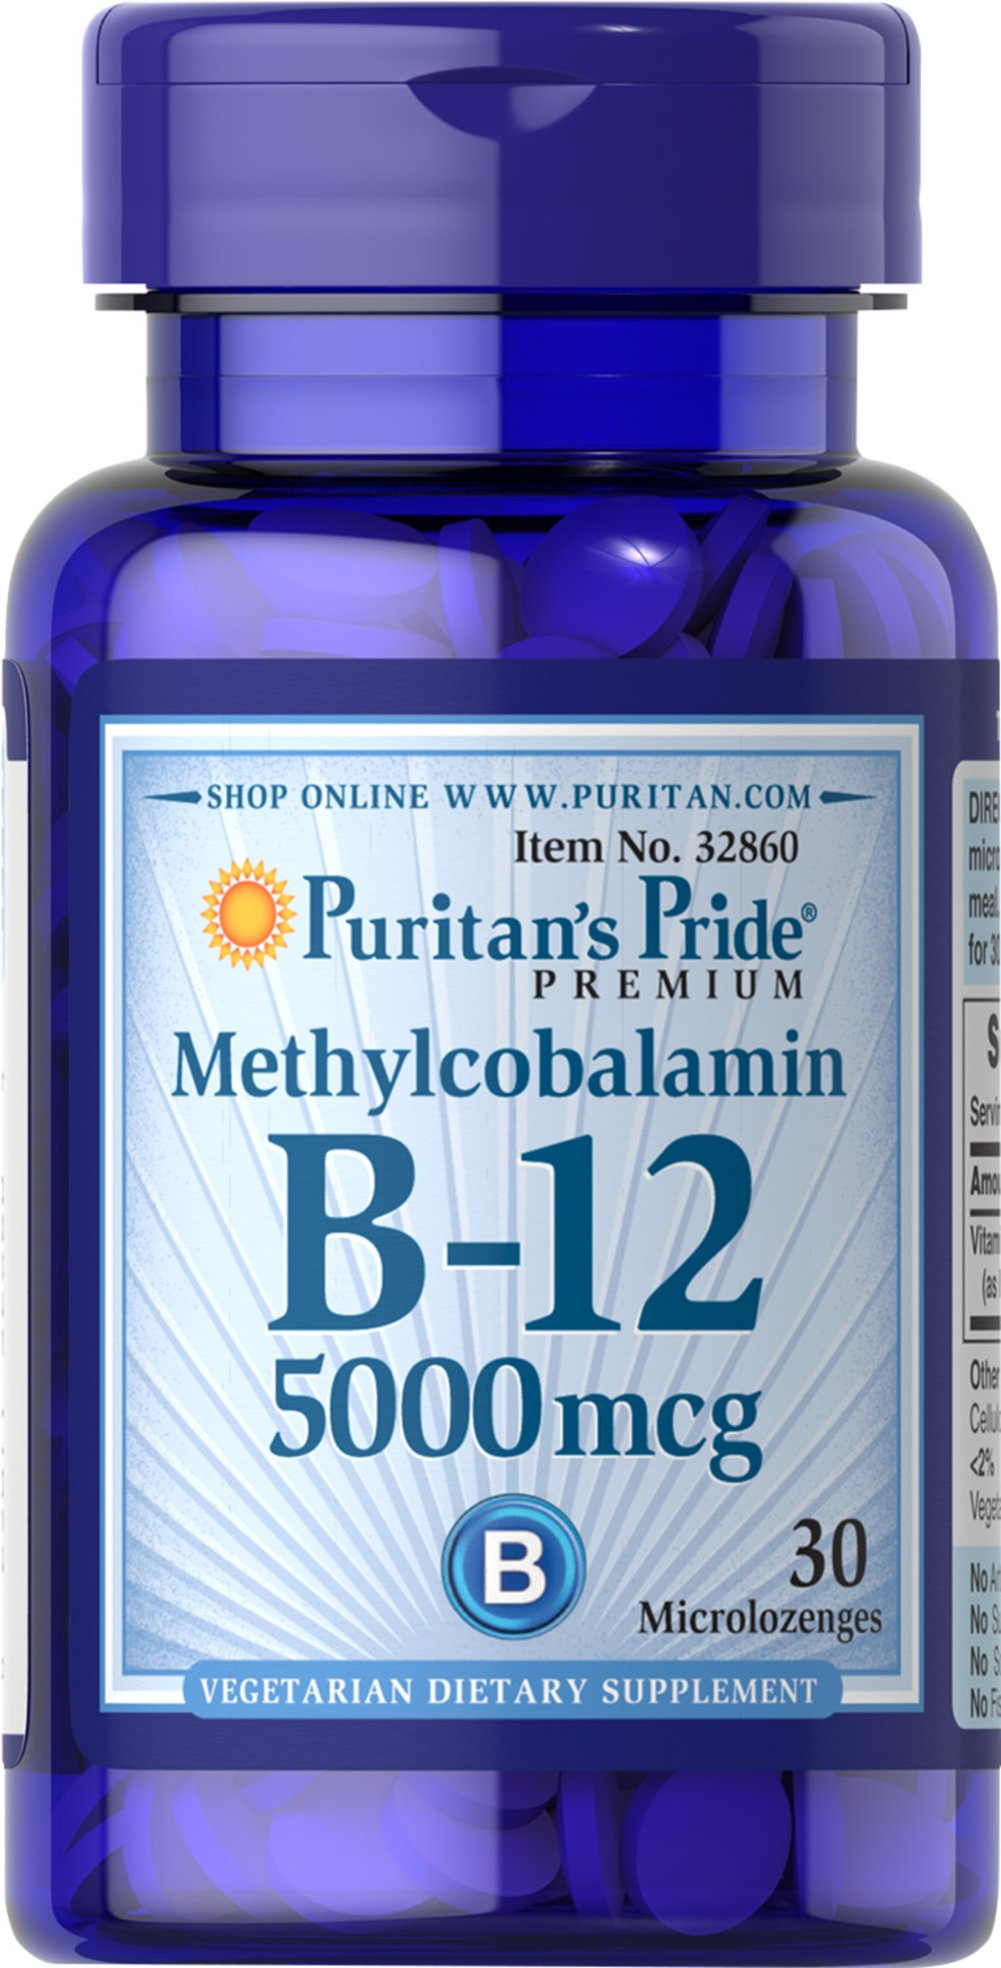 Methylcobalamin Vitamin B-12 5000 mcg <p>Methylcobalamin is a more predominant and active form of Vitamin B-12</p>  <p>Regular Vitamin B-12 supplements must be converted in the body to Methylcobalamin before they can provide any benefits – taking Methylcobalamin allows you to bypass this step for quicker absorption</p>  <p>This biologically active form of B 12 promotes heart health and energy metabolism**</p> 30 Microlozenges 5000 mcg $14.39